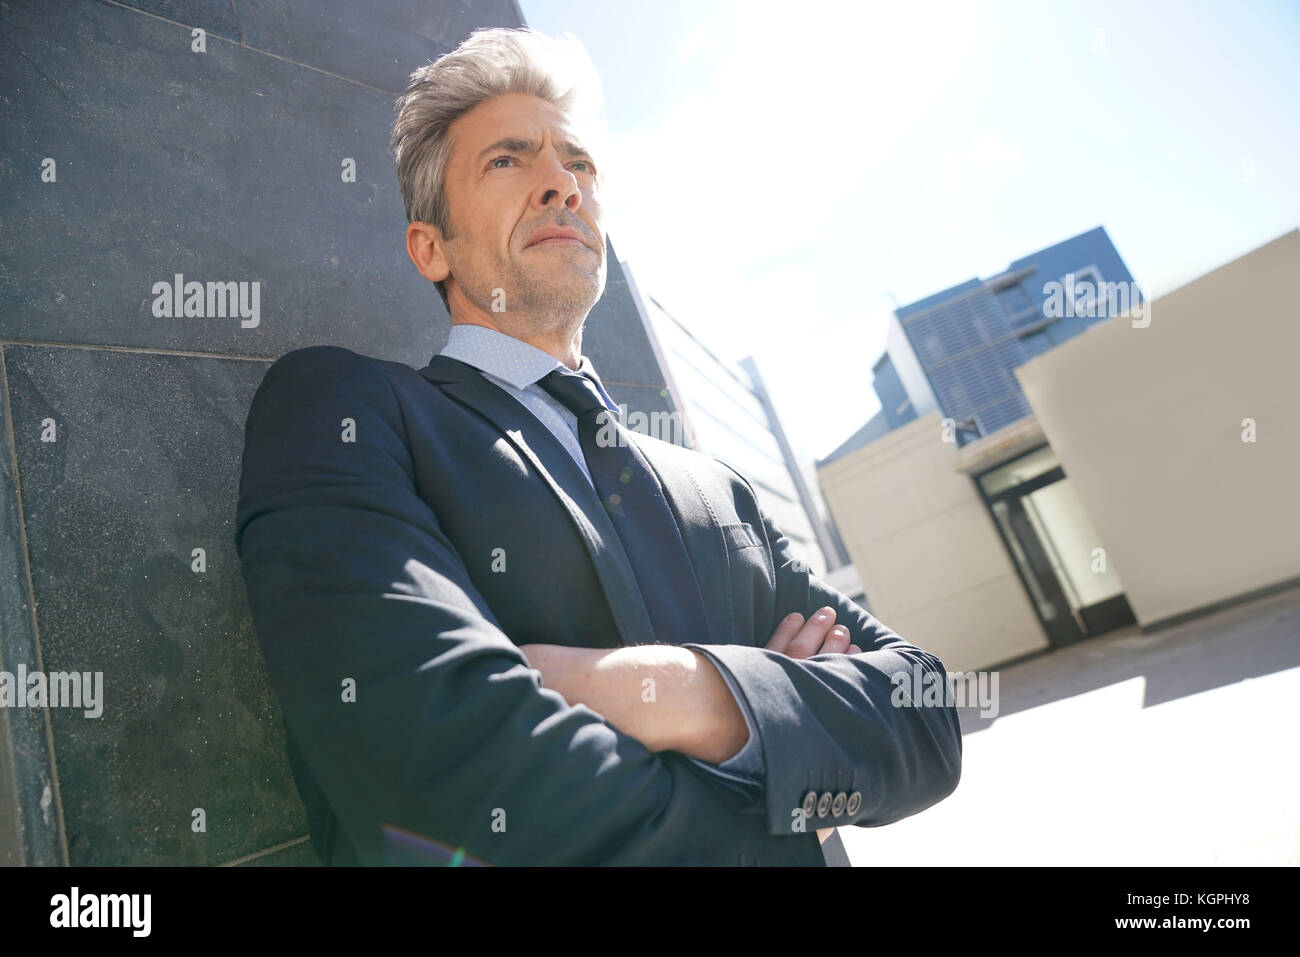 Portrait of businessman waiting outside building, leant on wall - Stock Image